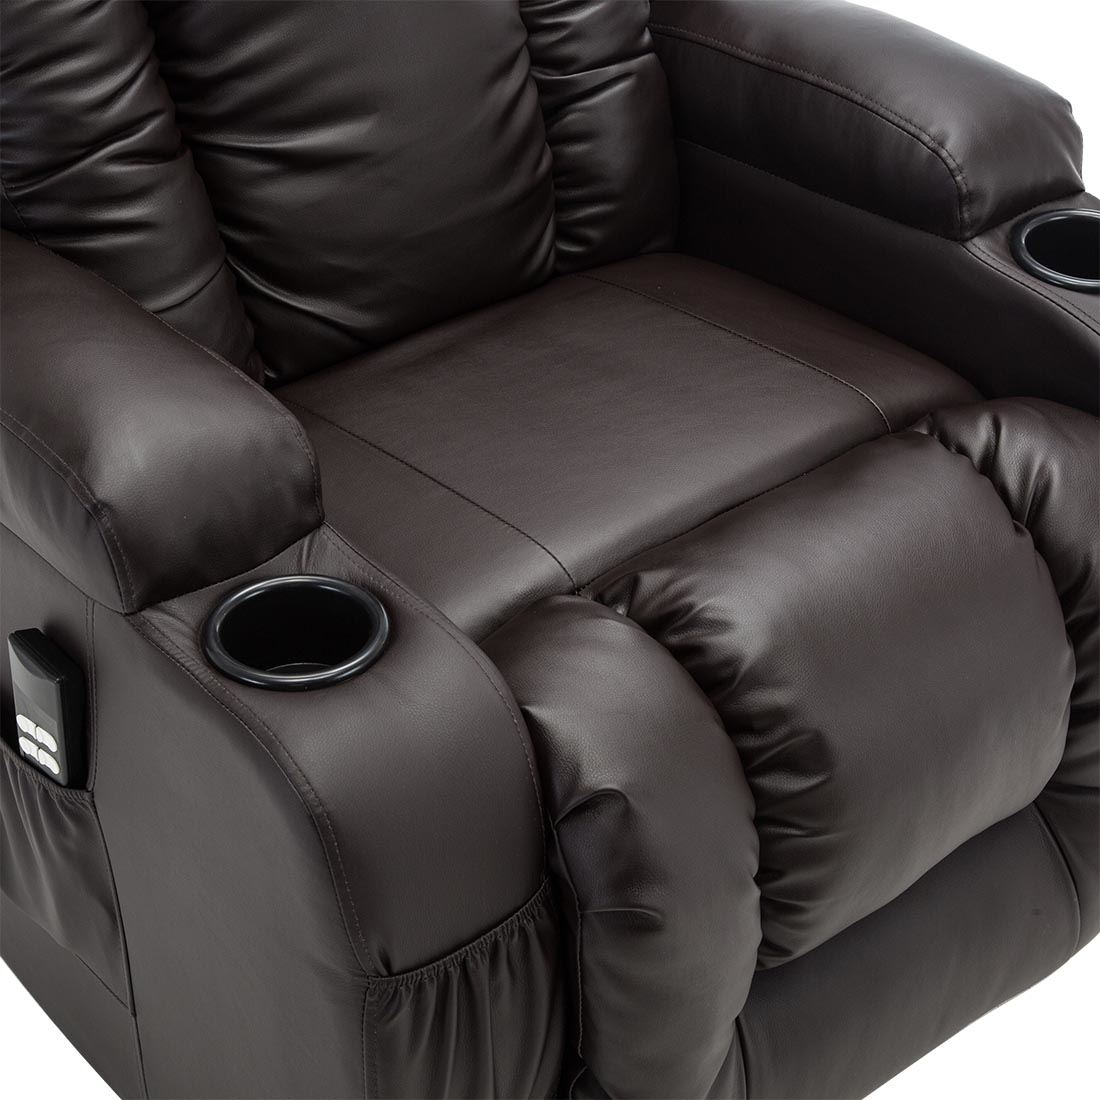 CAESAR-DUAL-MOTOR-RISER-RECLINER-LEATHER-MOBILITY-ARMCHAIR-MASSAGE-HEATED-CHAIR thumbnail 15